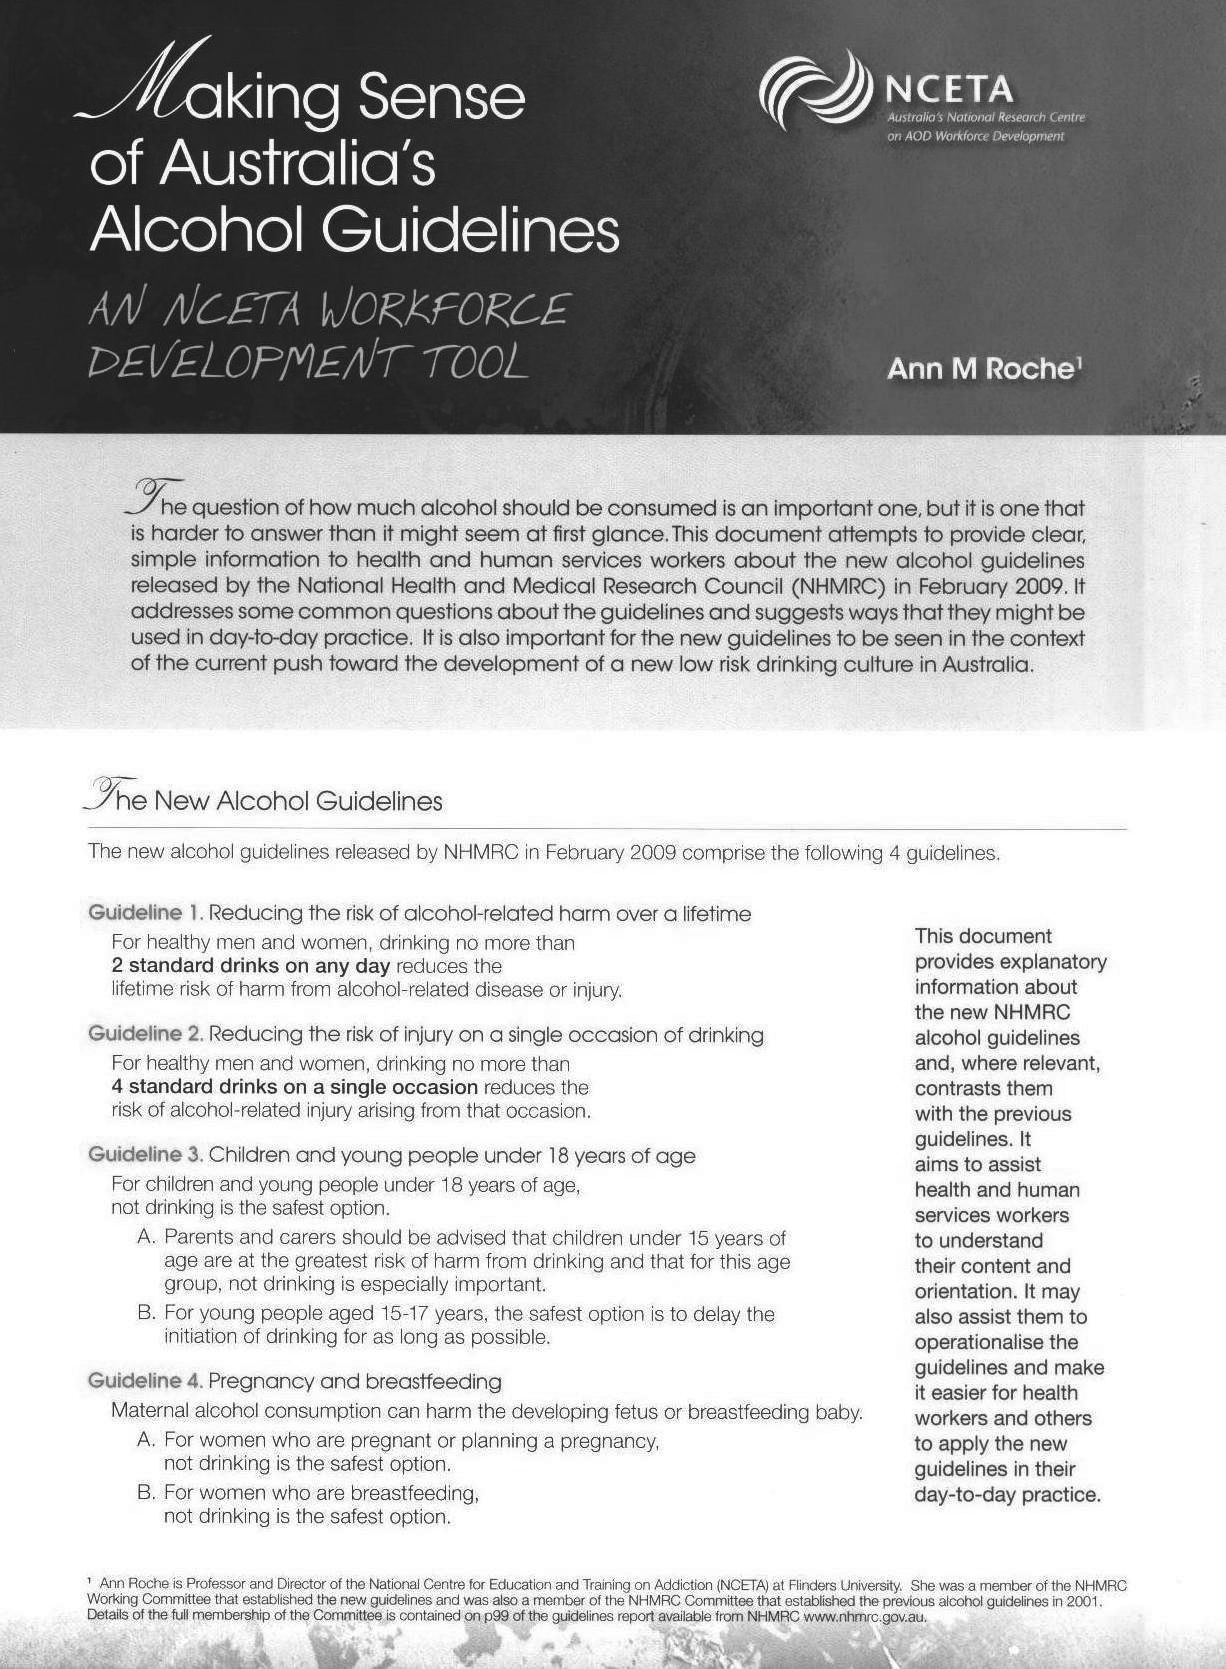 Making sense of Australia's alcohol guidelines